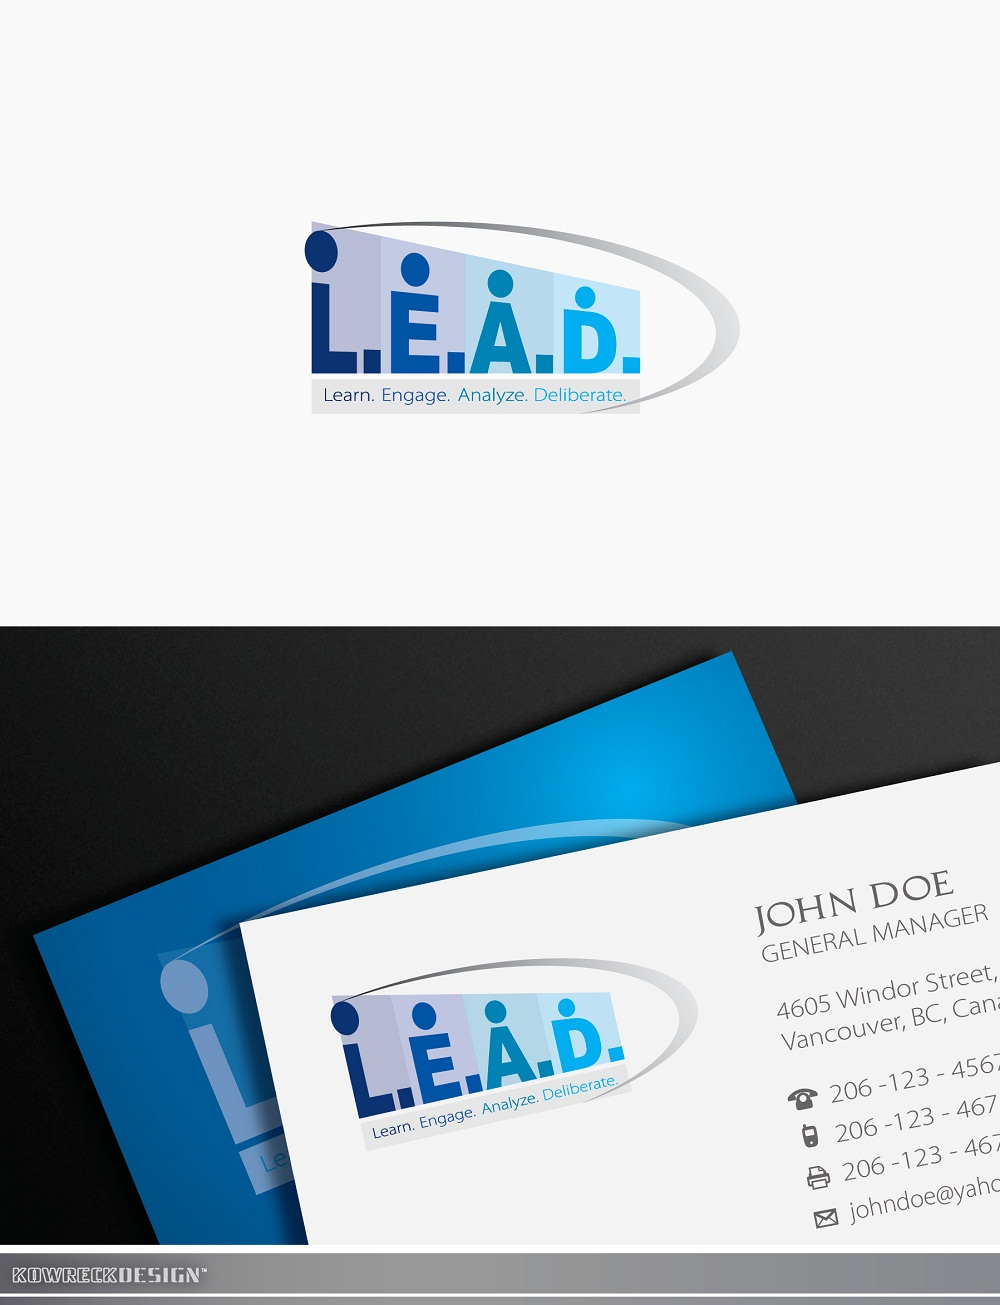 Logo Design by kowreck - Entry No. 106 in the Logo Design Contest L.E.A.D. (learn, engage, analyze, deliberate) Logo Design.